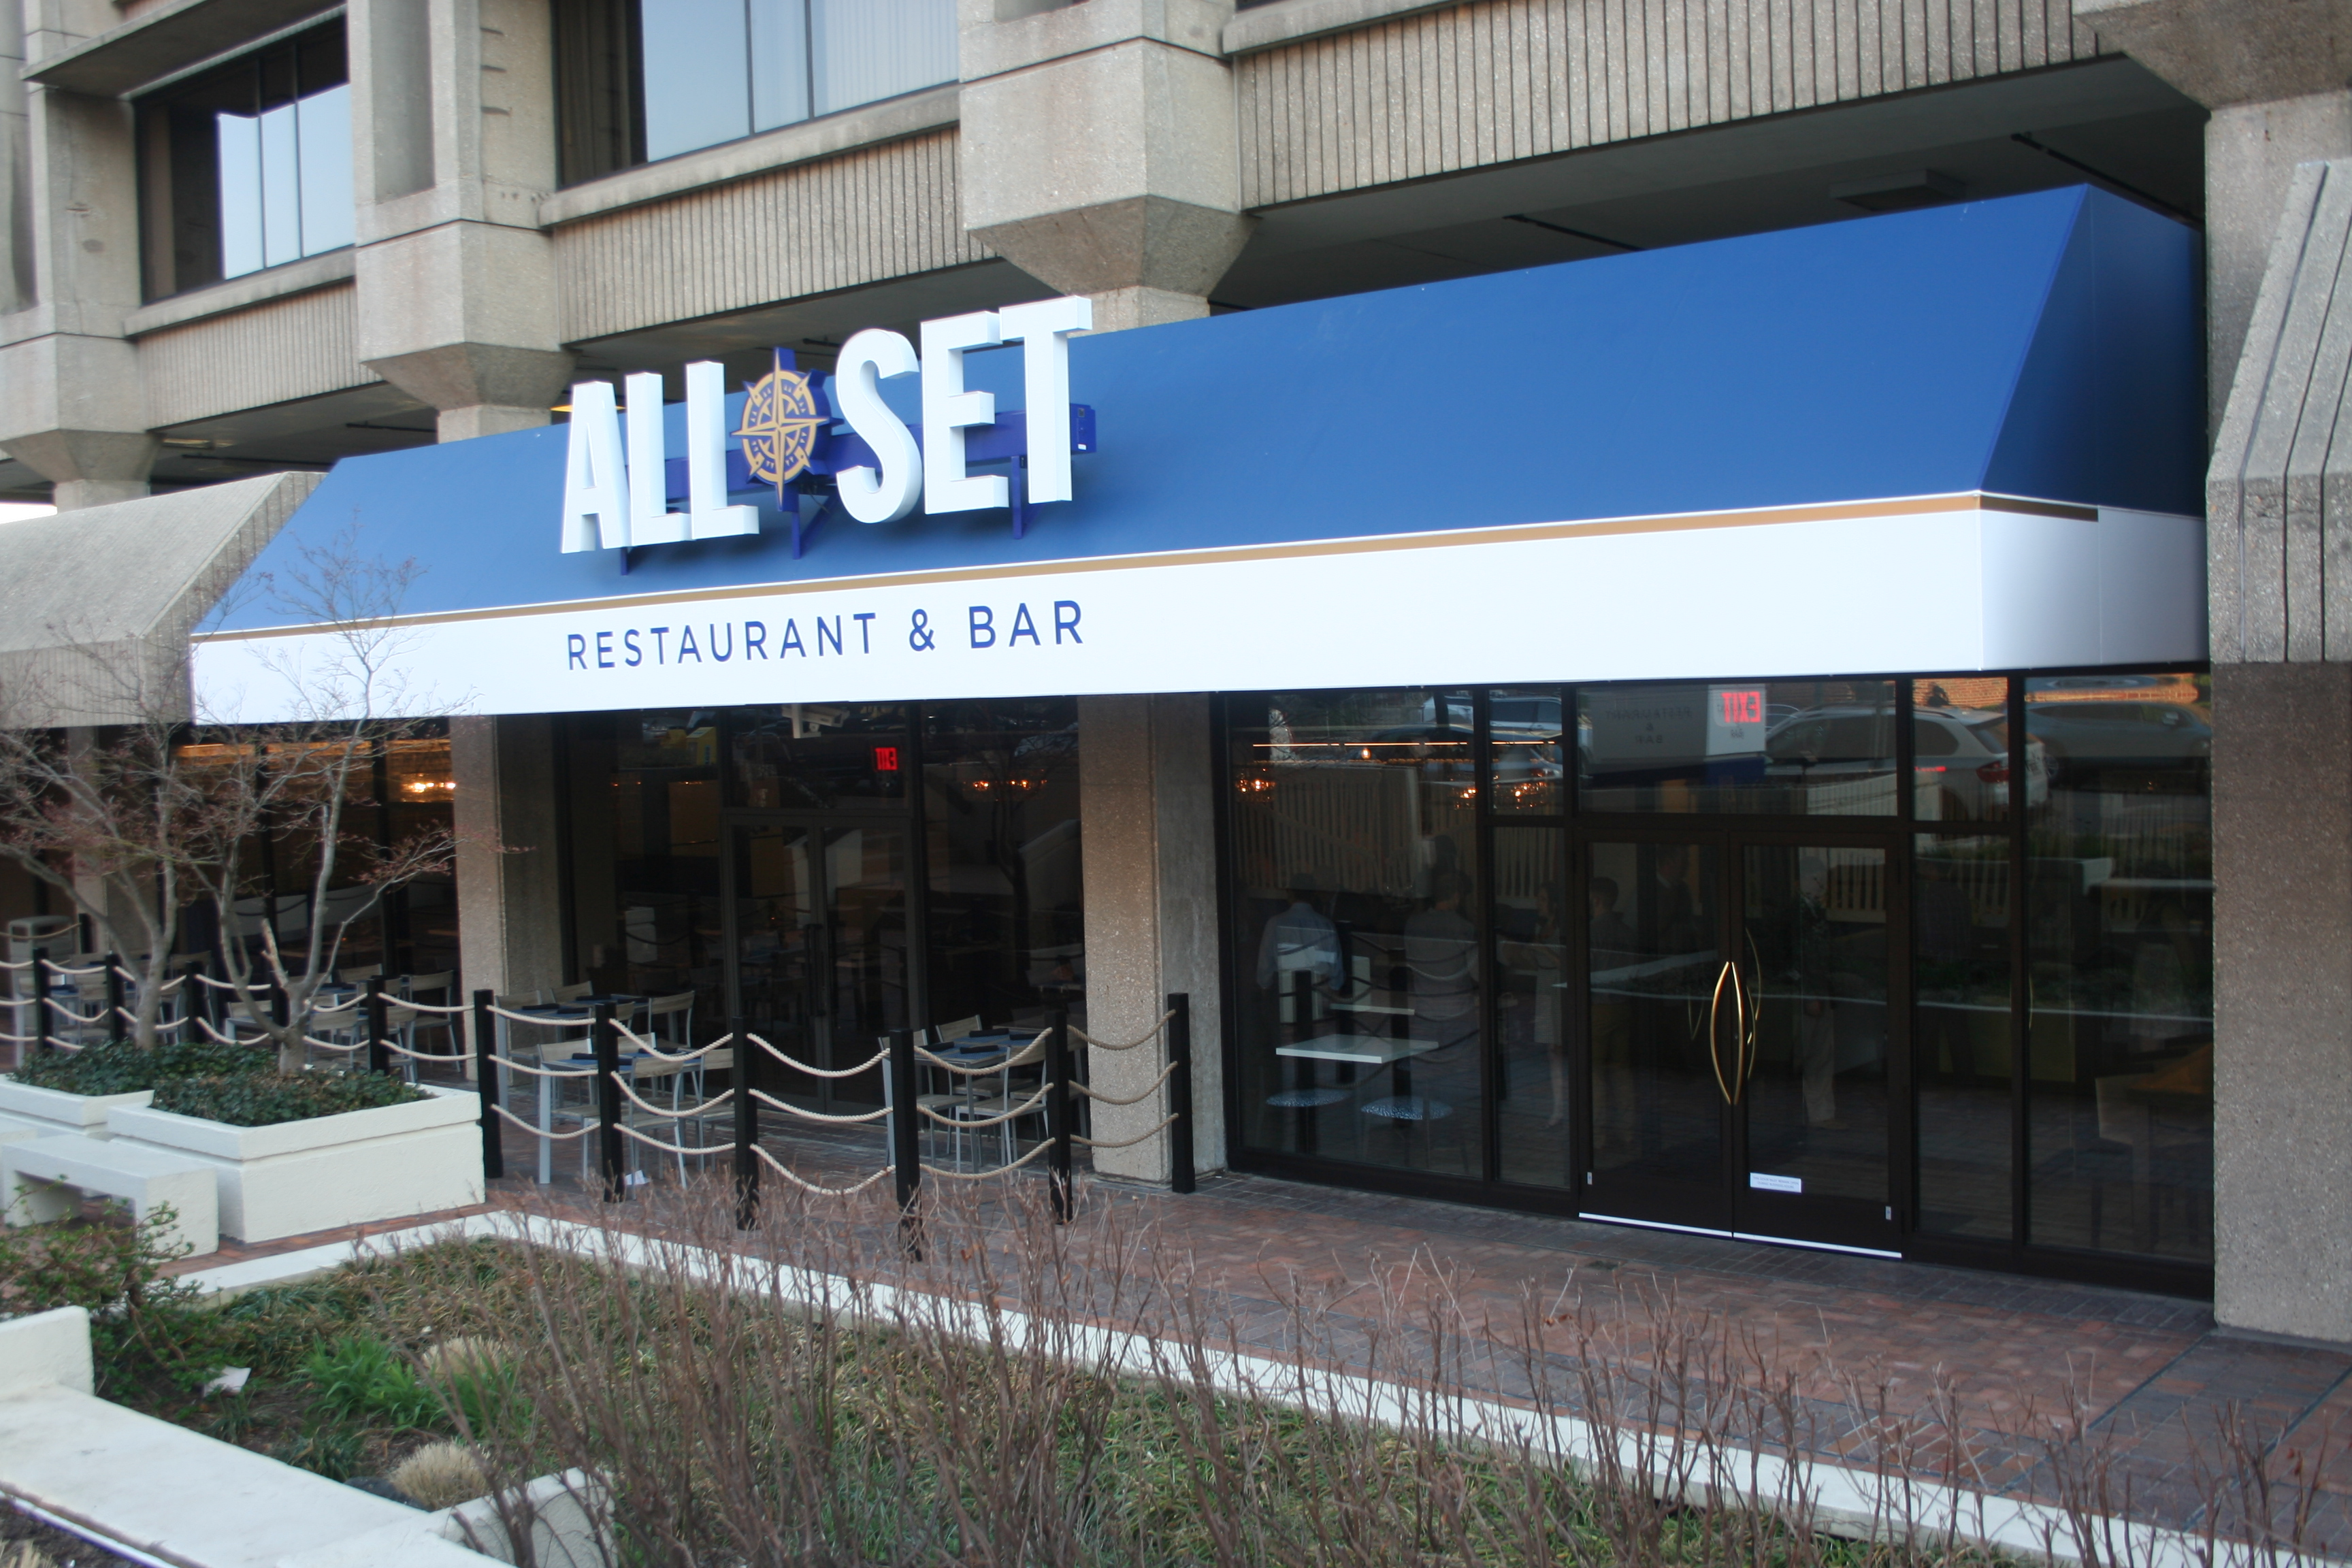 All Set Restaurant & Bar opened in the Montgomery Center on Fenton Street in Silver Spring on Tuesday. (Photo: Mark Heckathorn/DC on Heels)